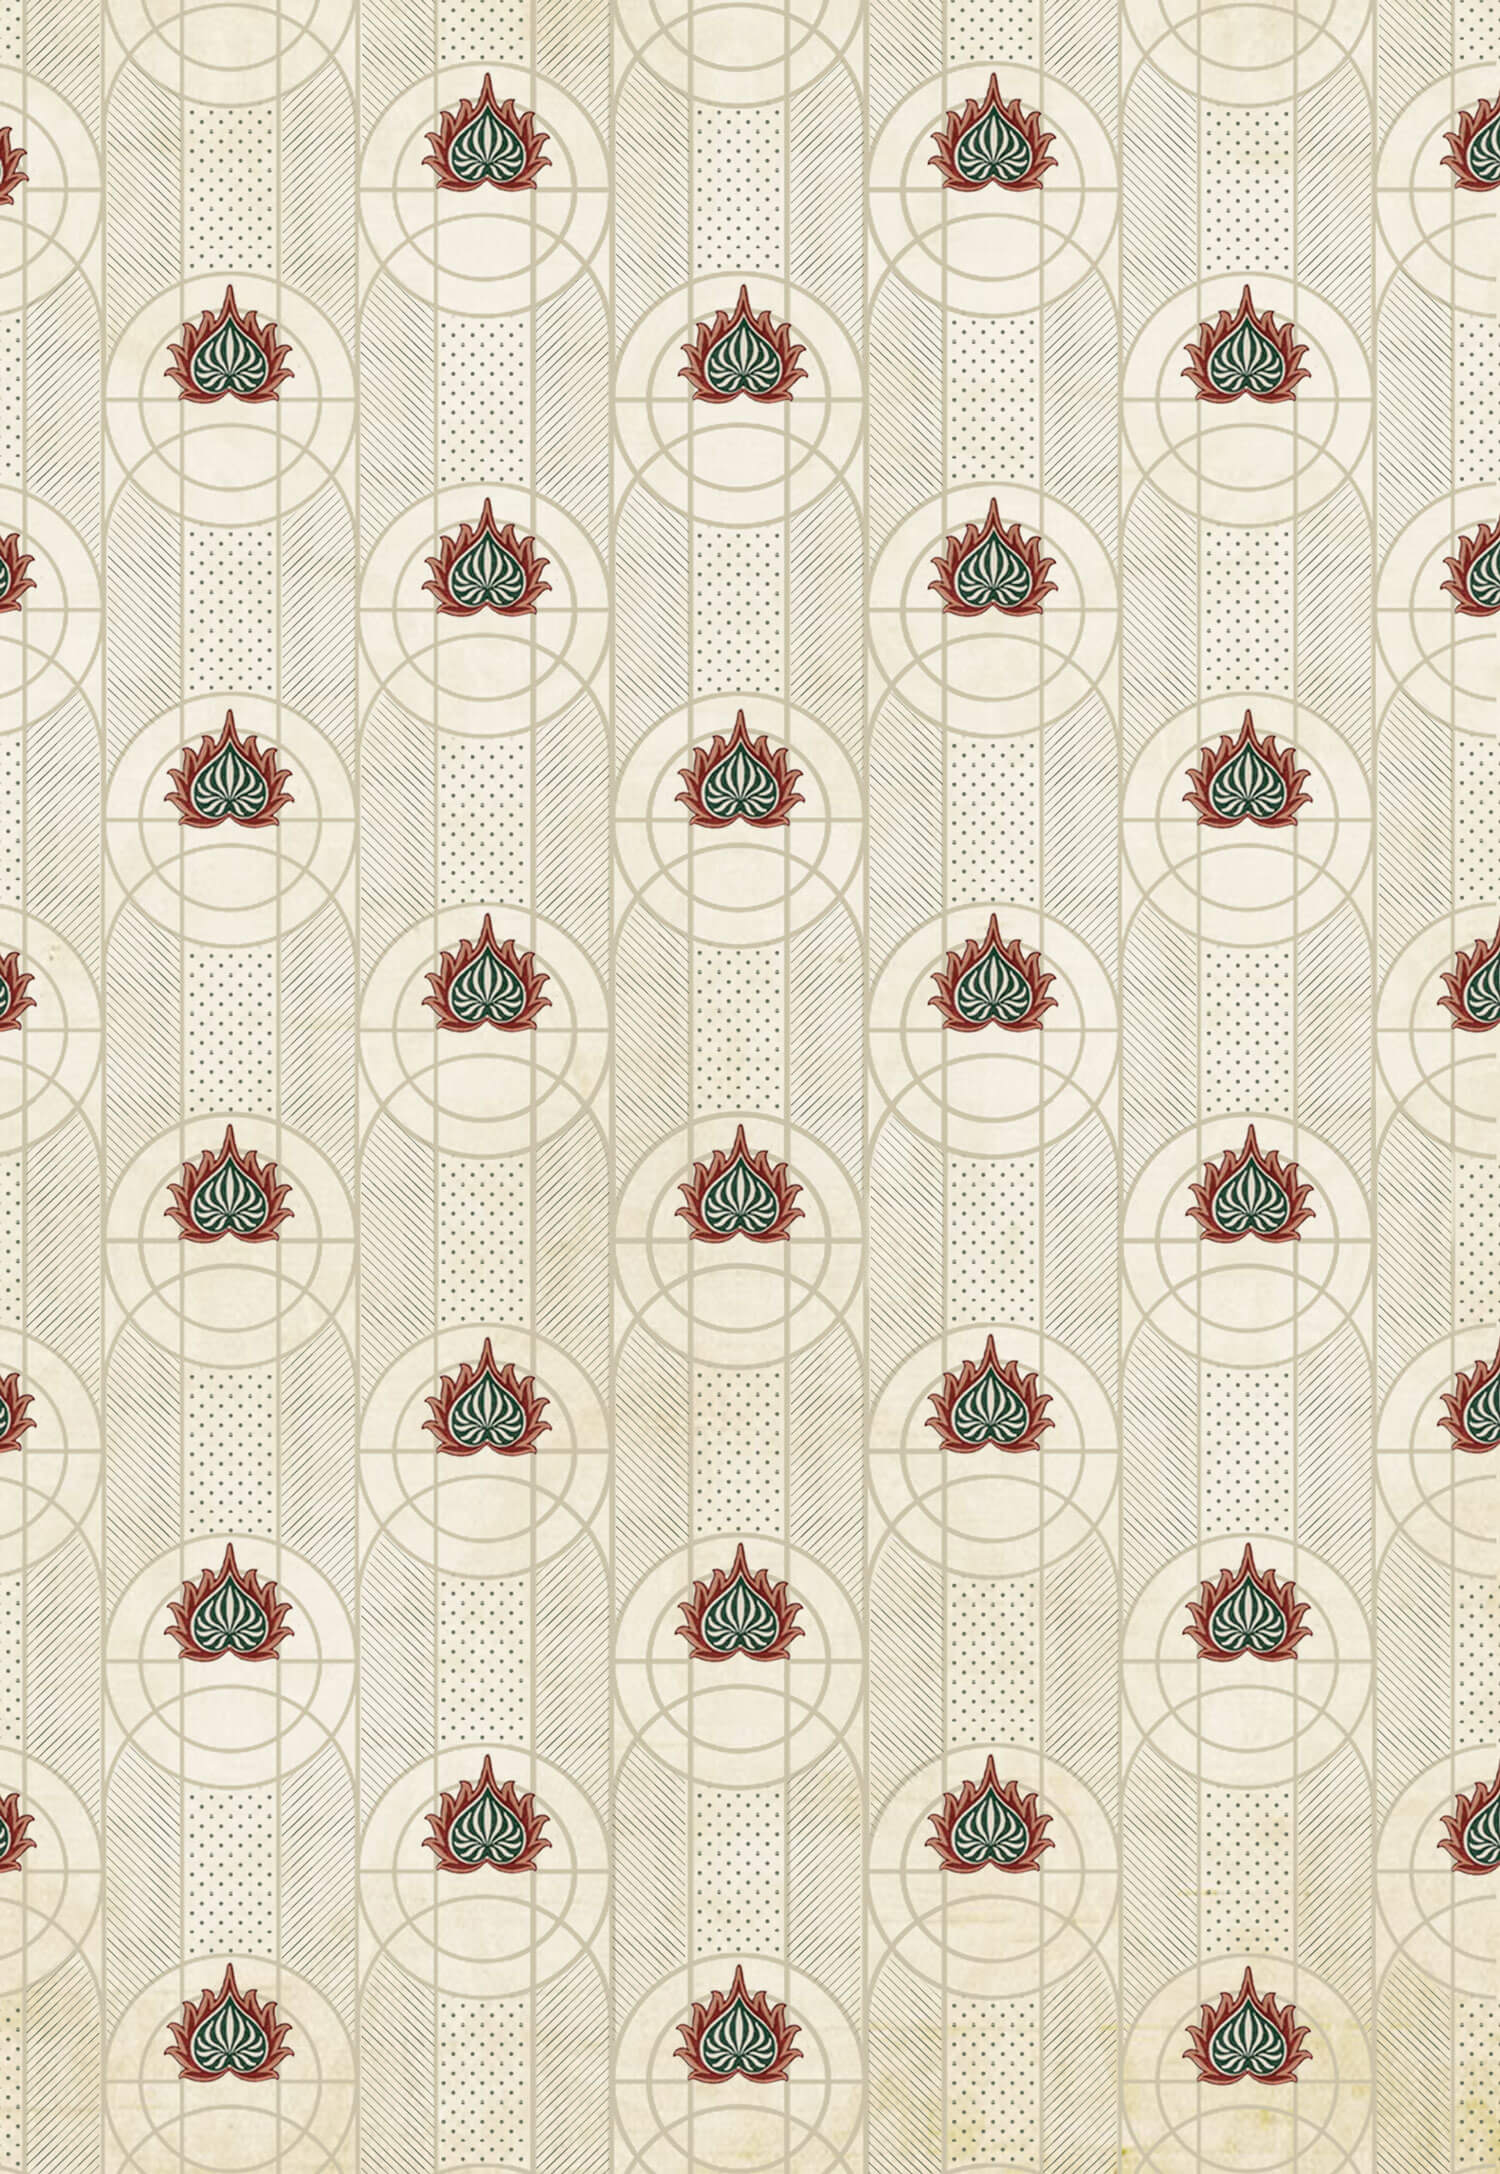 Geometric Artistry Fabric For Home Decor Online Design By Metamorph